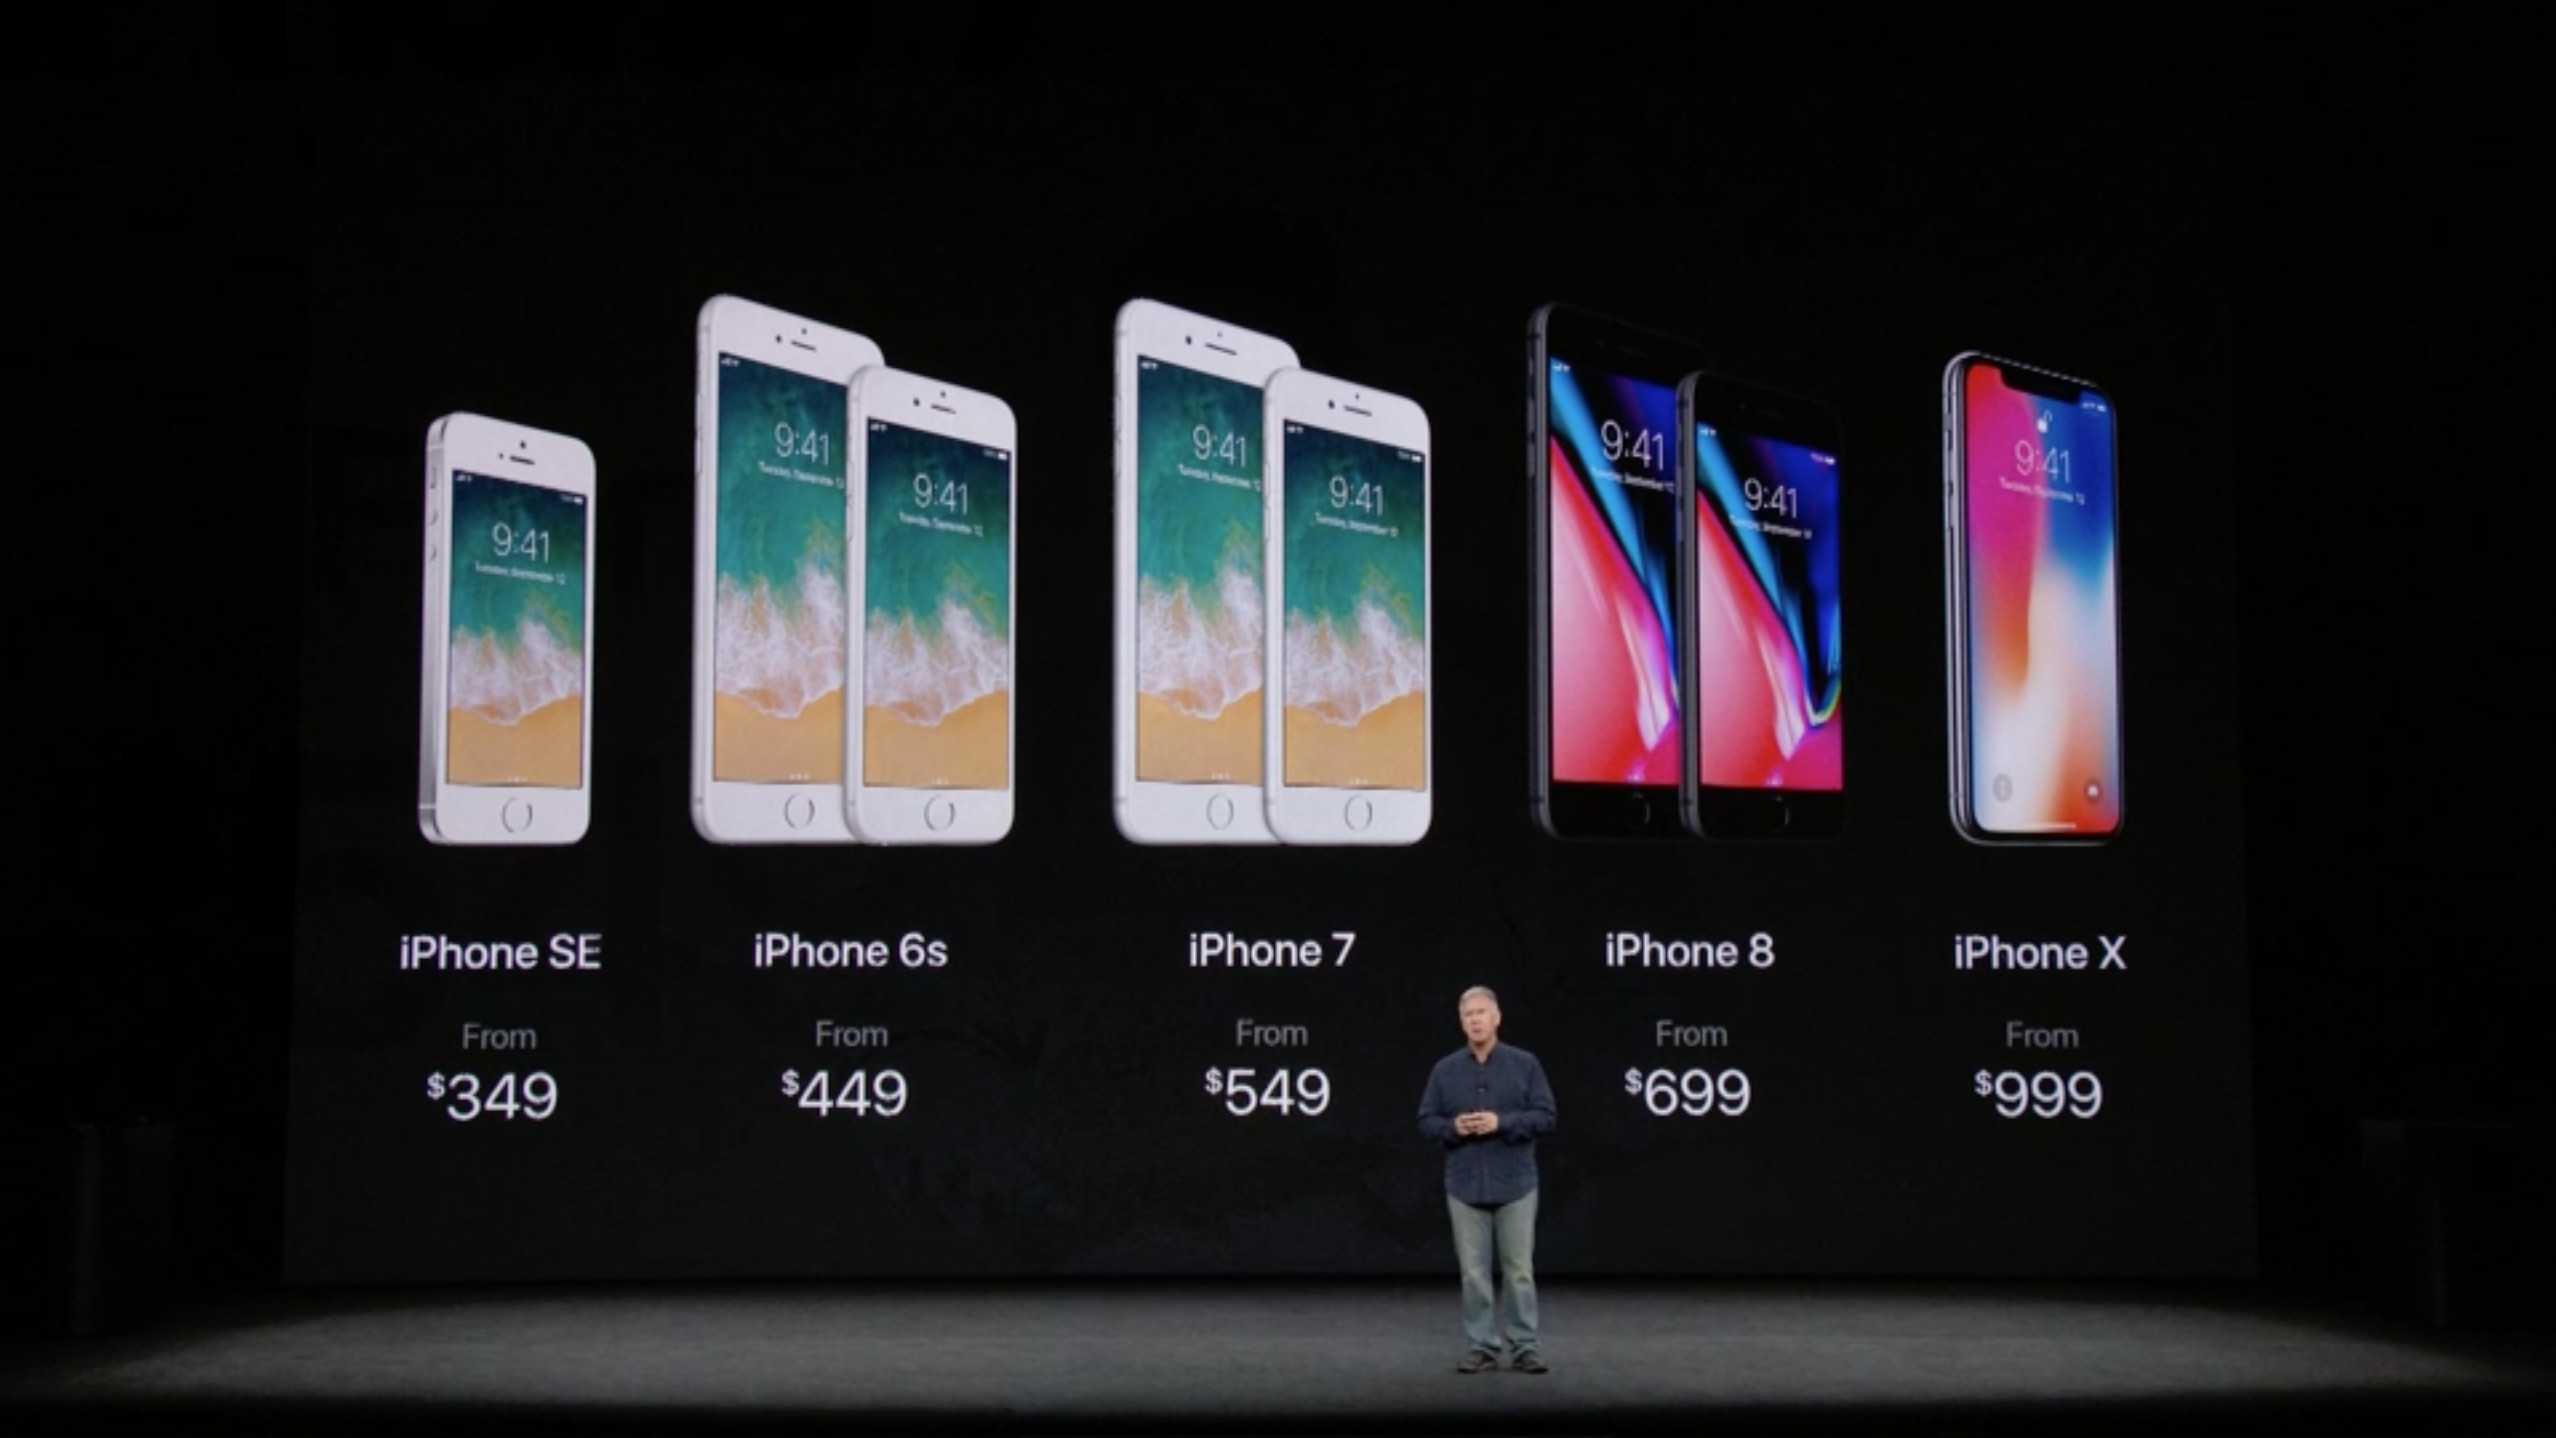 2556x1438 There's a sneaky reason why the new iPhone X costs $999 instead of $1,000